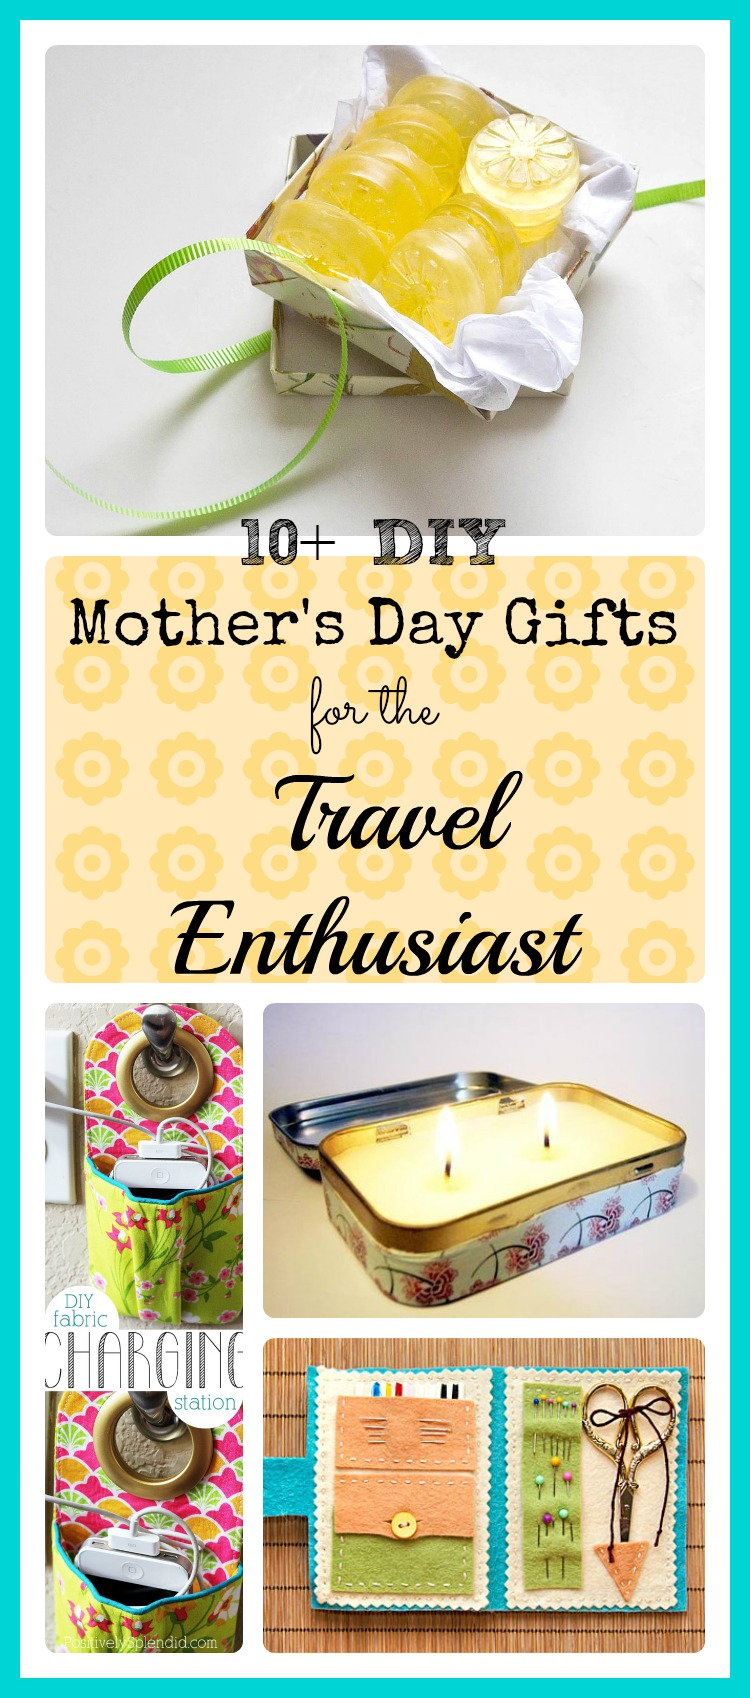 10+ DIY Mother's Day Gifts for the Travel Enthusiast ...